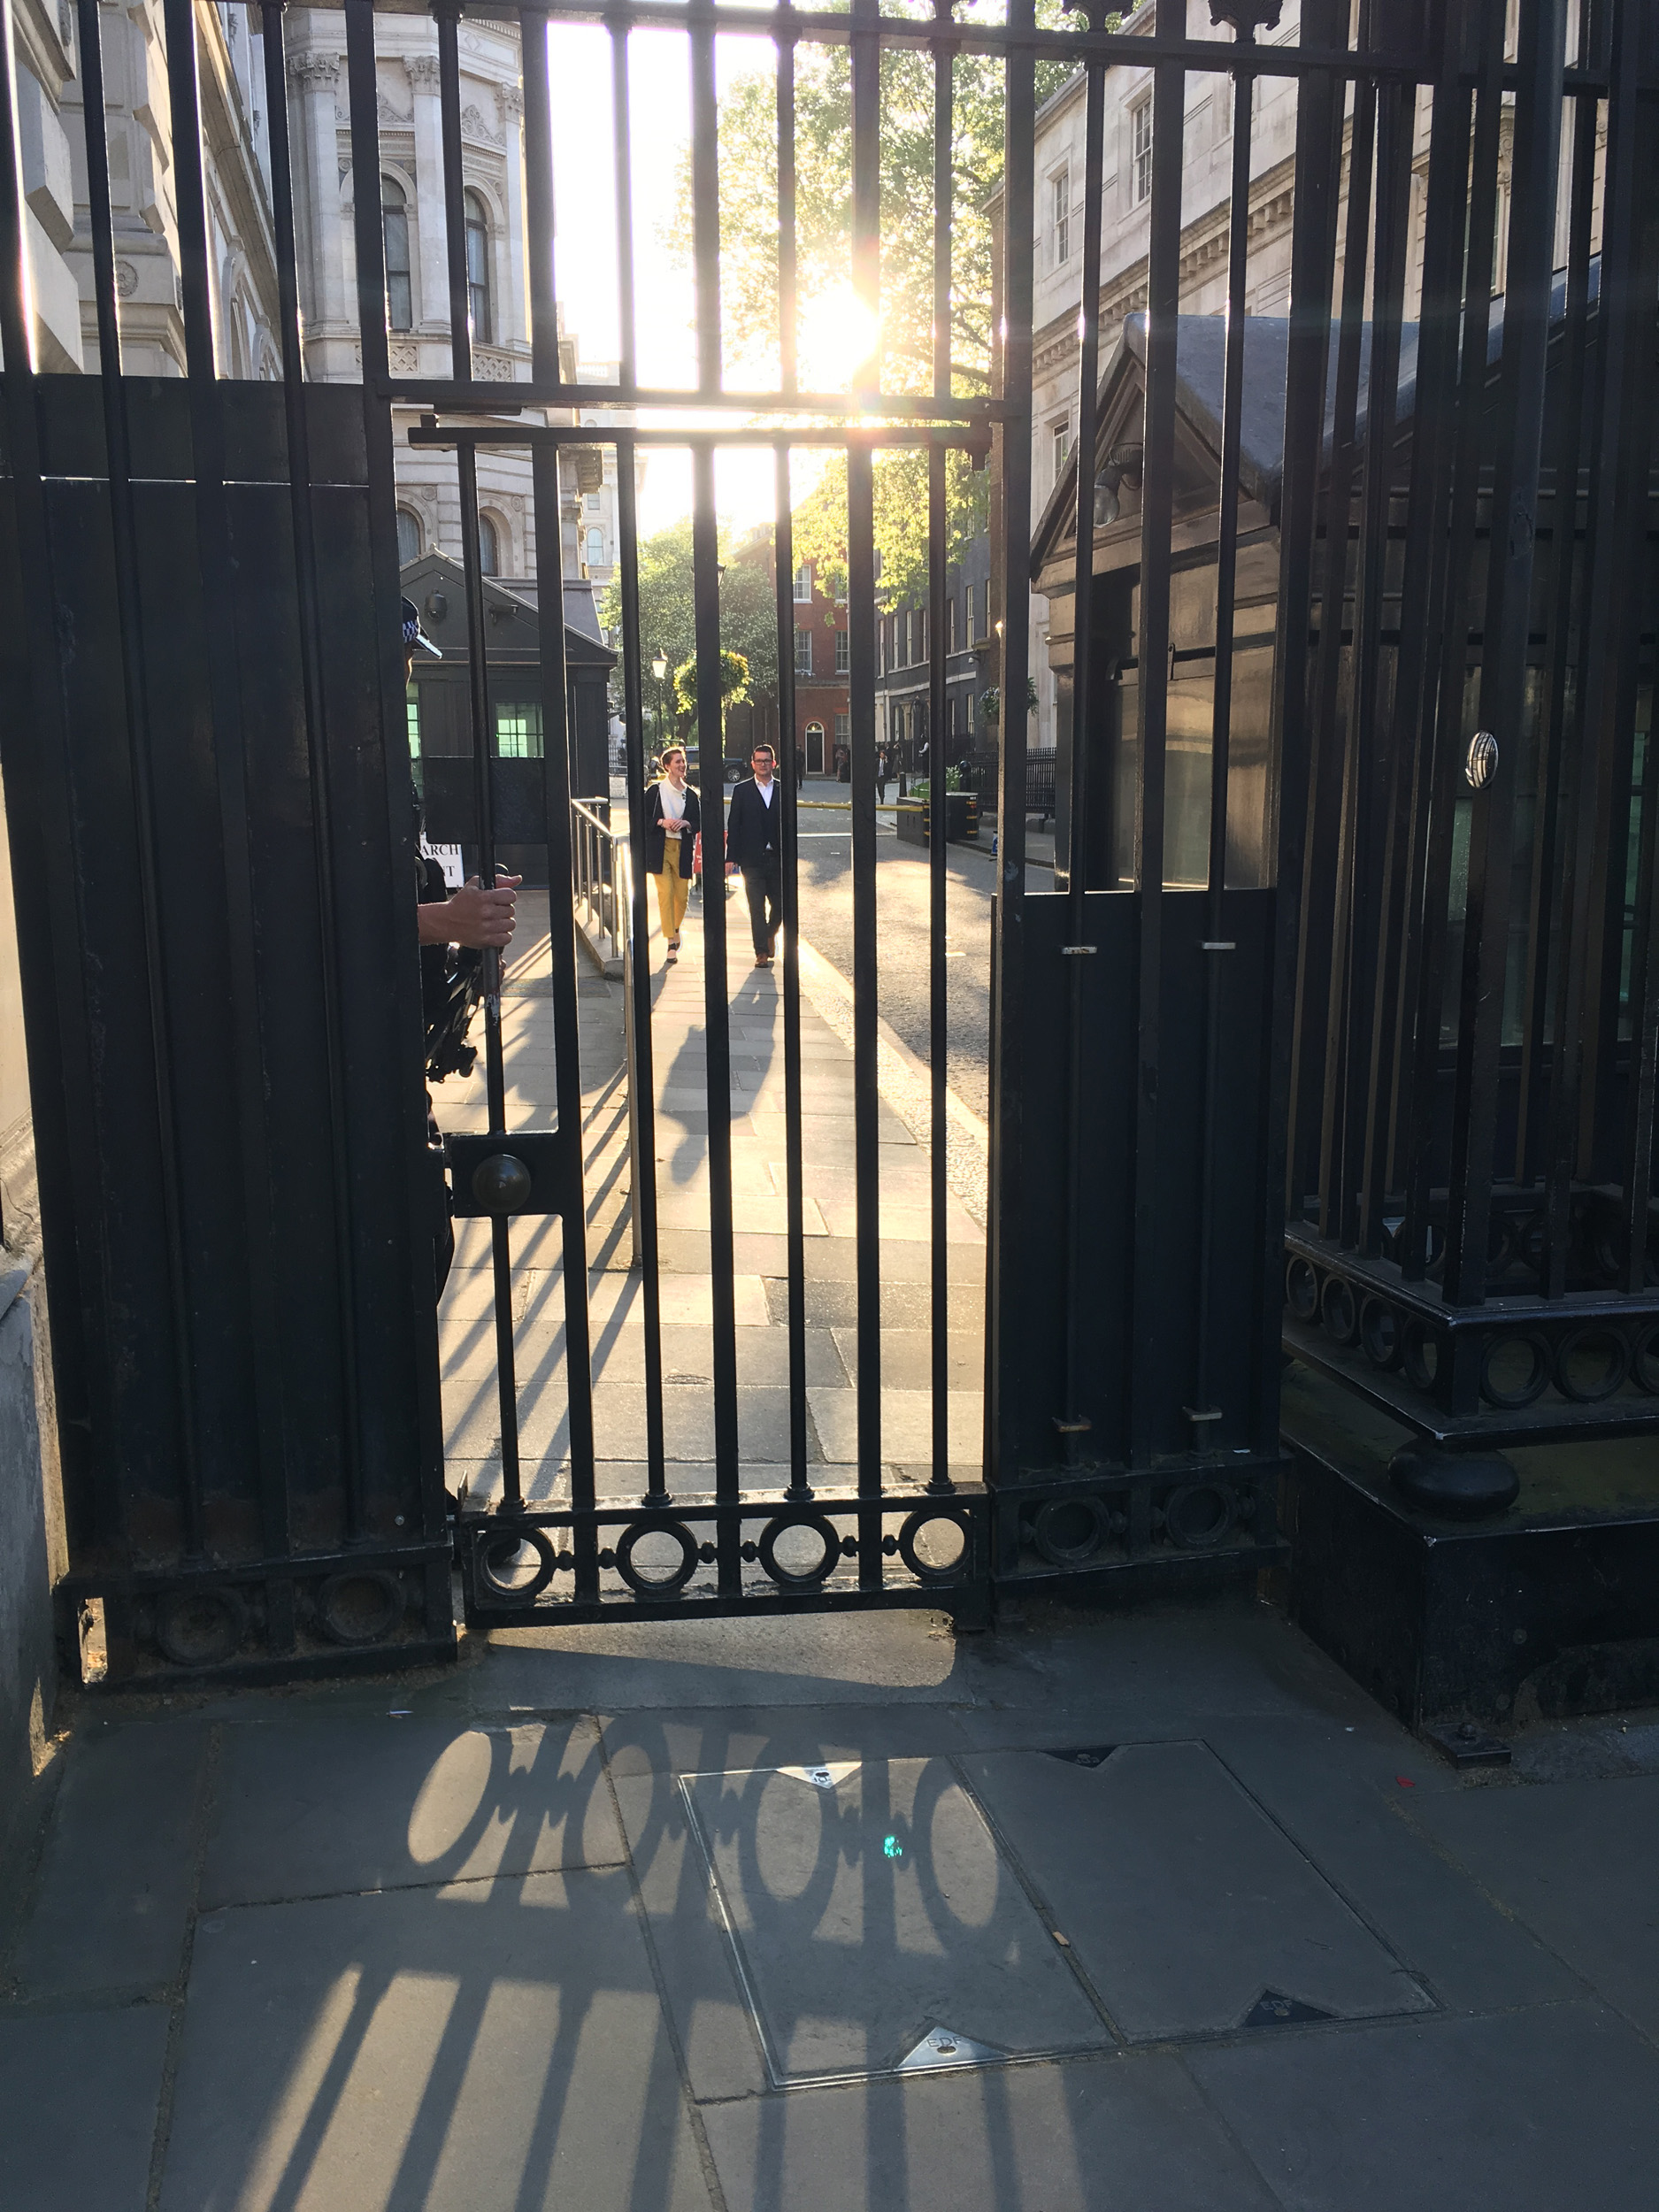 The sun going down on a very special day as I walk towards the gate in my yellow trousers.